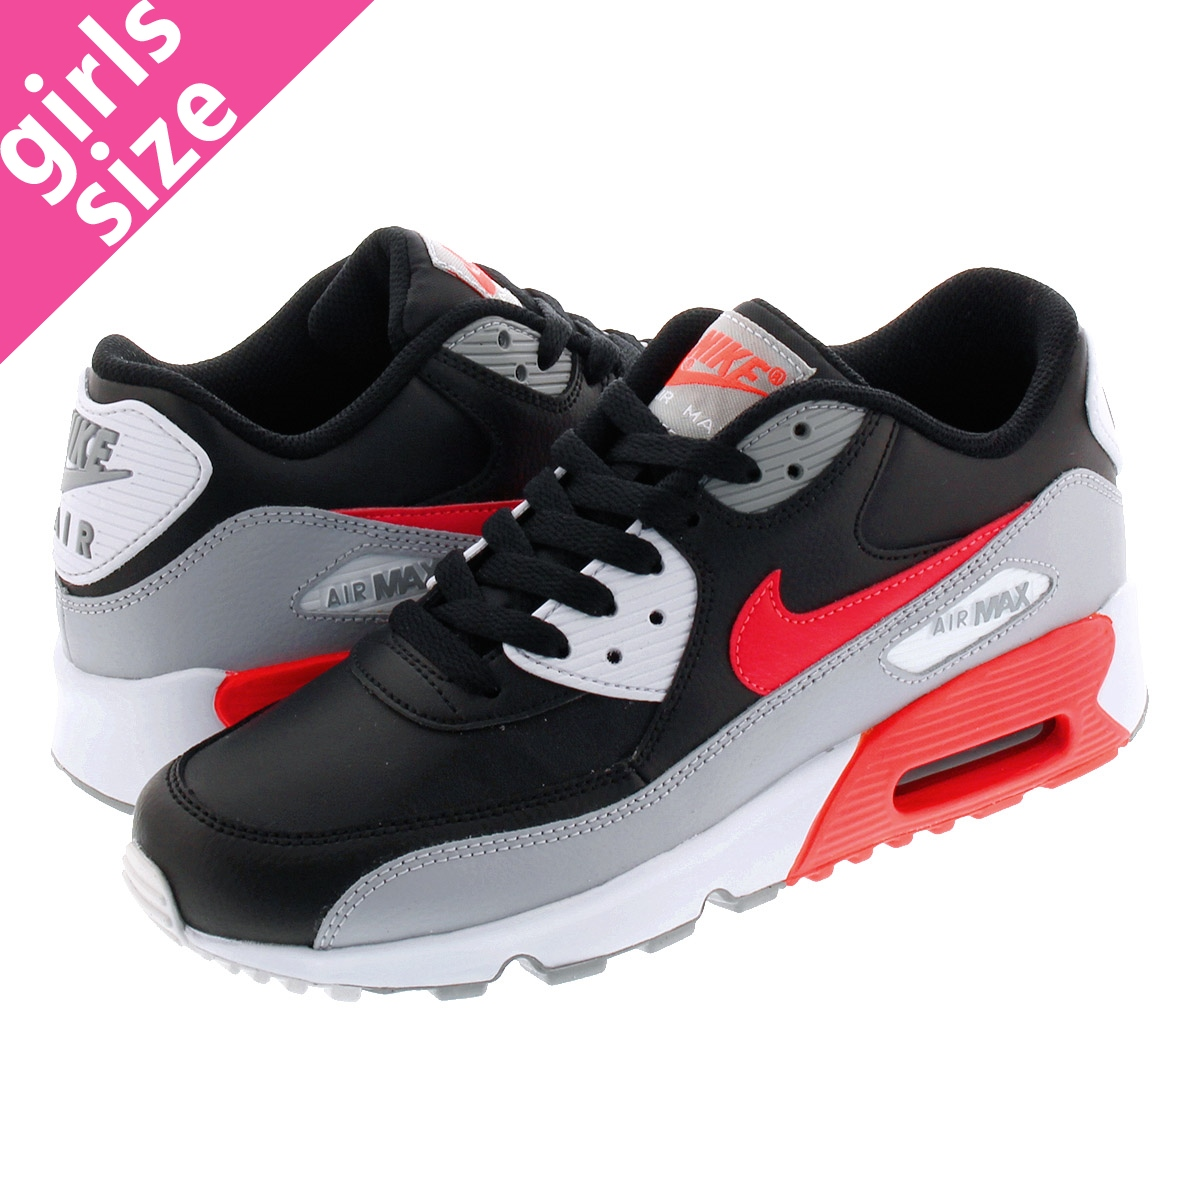 NIKE AIR MAX 90 LTR GS Kie Ney AMAX 90 leather GS WOLF GREYBRIGHT CRIMSONBLACK 833,412 024